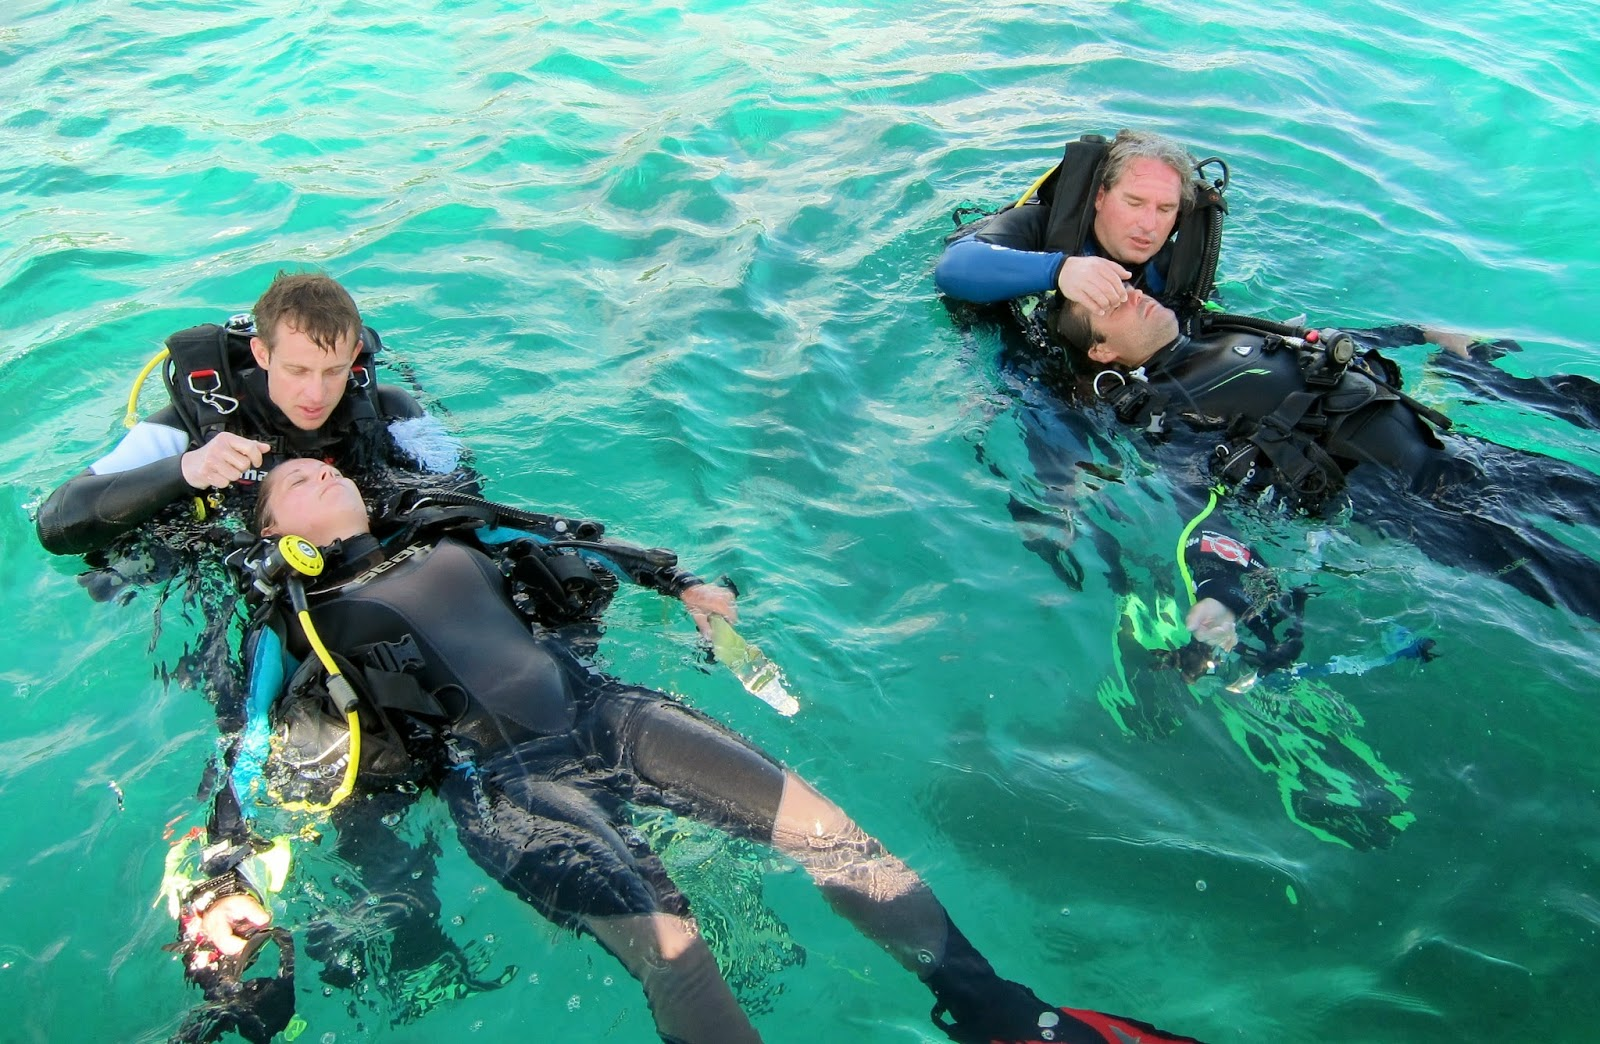 PADI Rescue students practising in water mouth to mouth resucitation in Malapascua, Philippines.